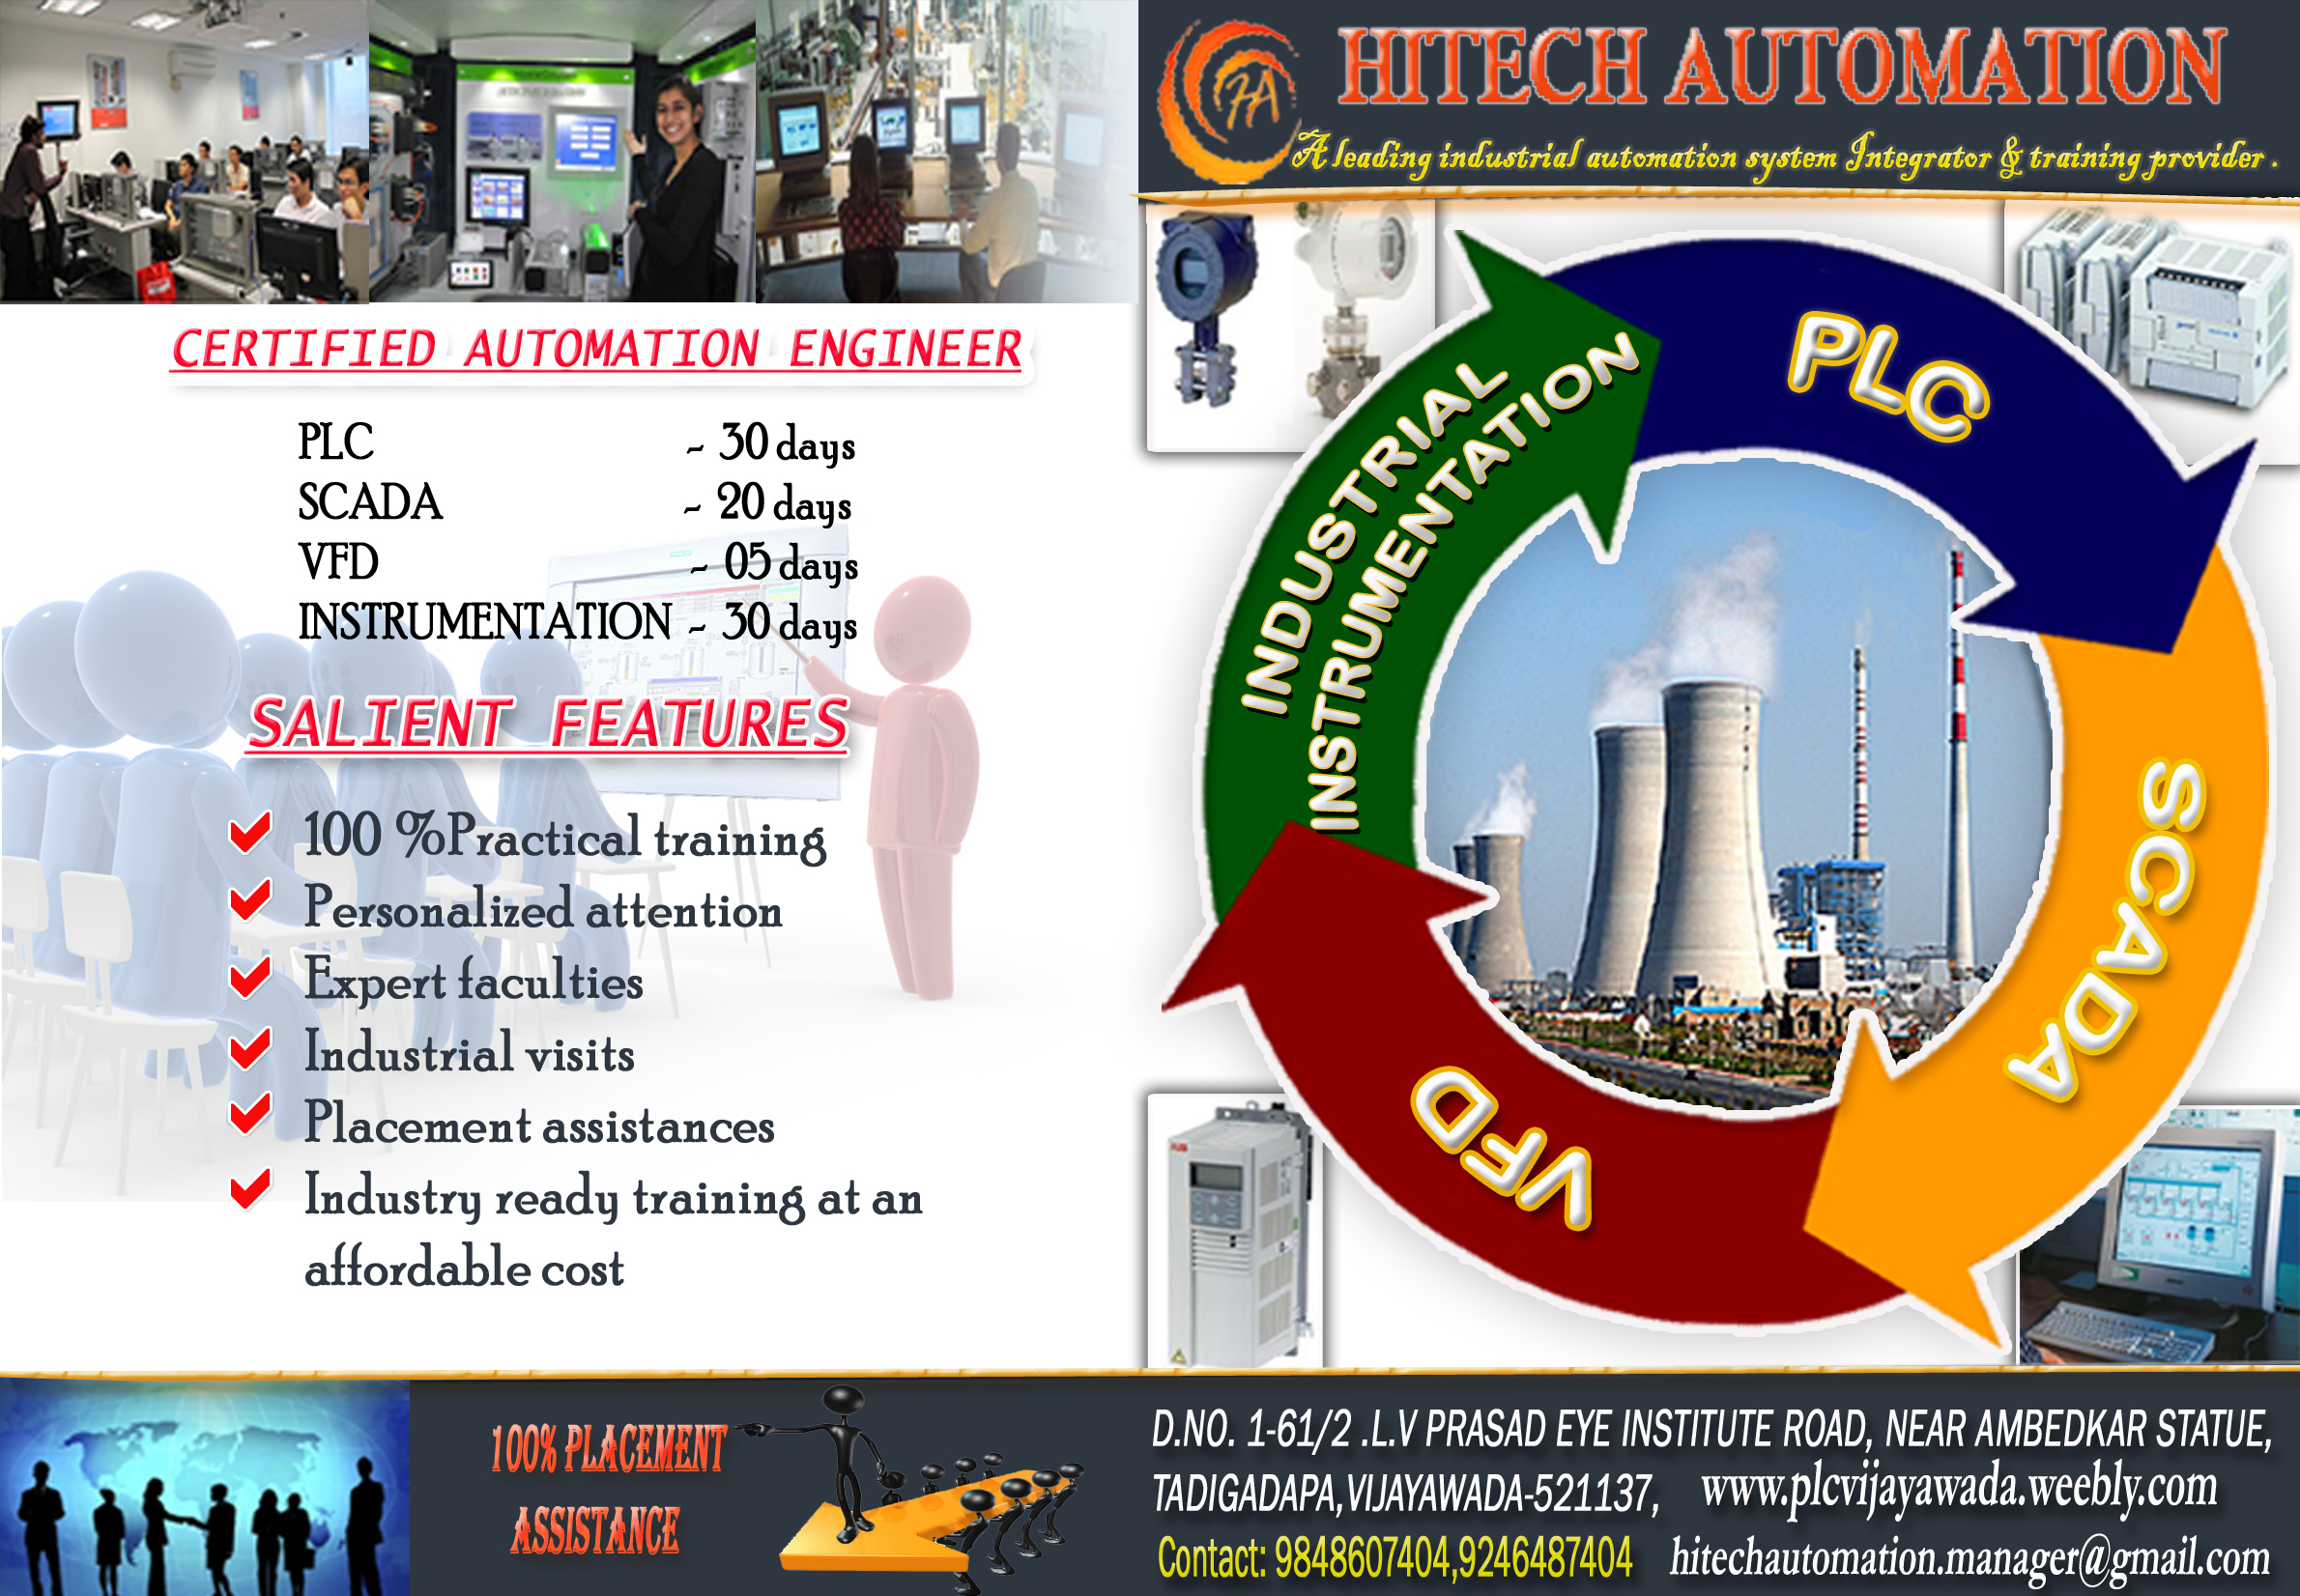 HITECH AUTOMATION Vijayawada City - Industrial Projects Course